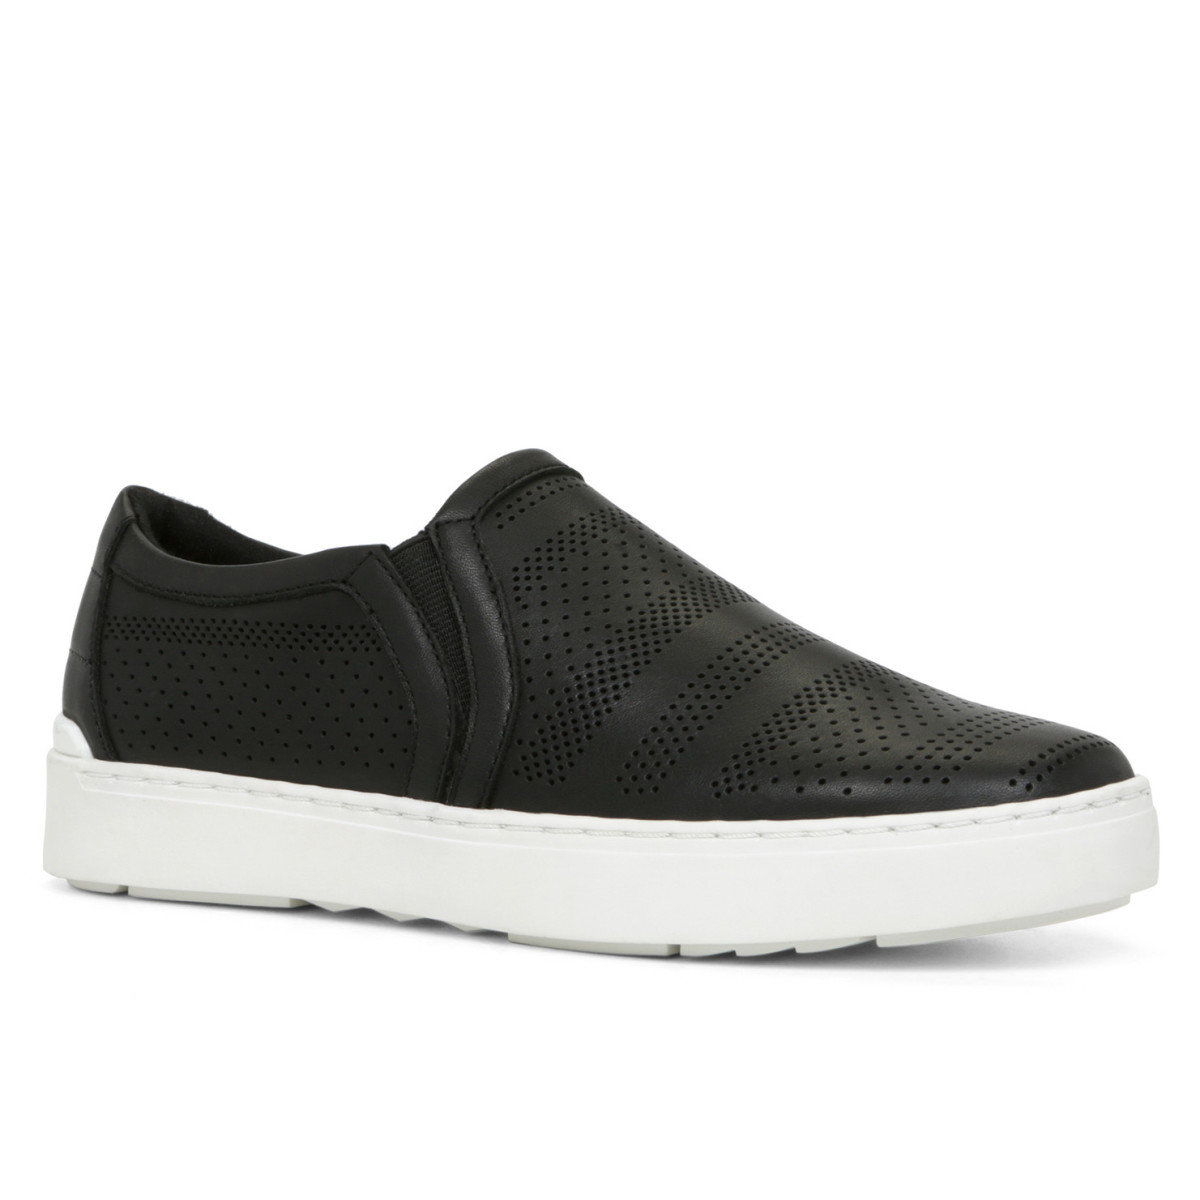 Aldo NAYWEN slip-on perforated-leather sneaker with rubber sole ($80 at aldo.com) – also in a nude